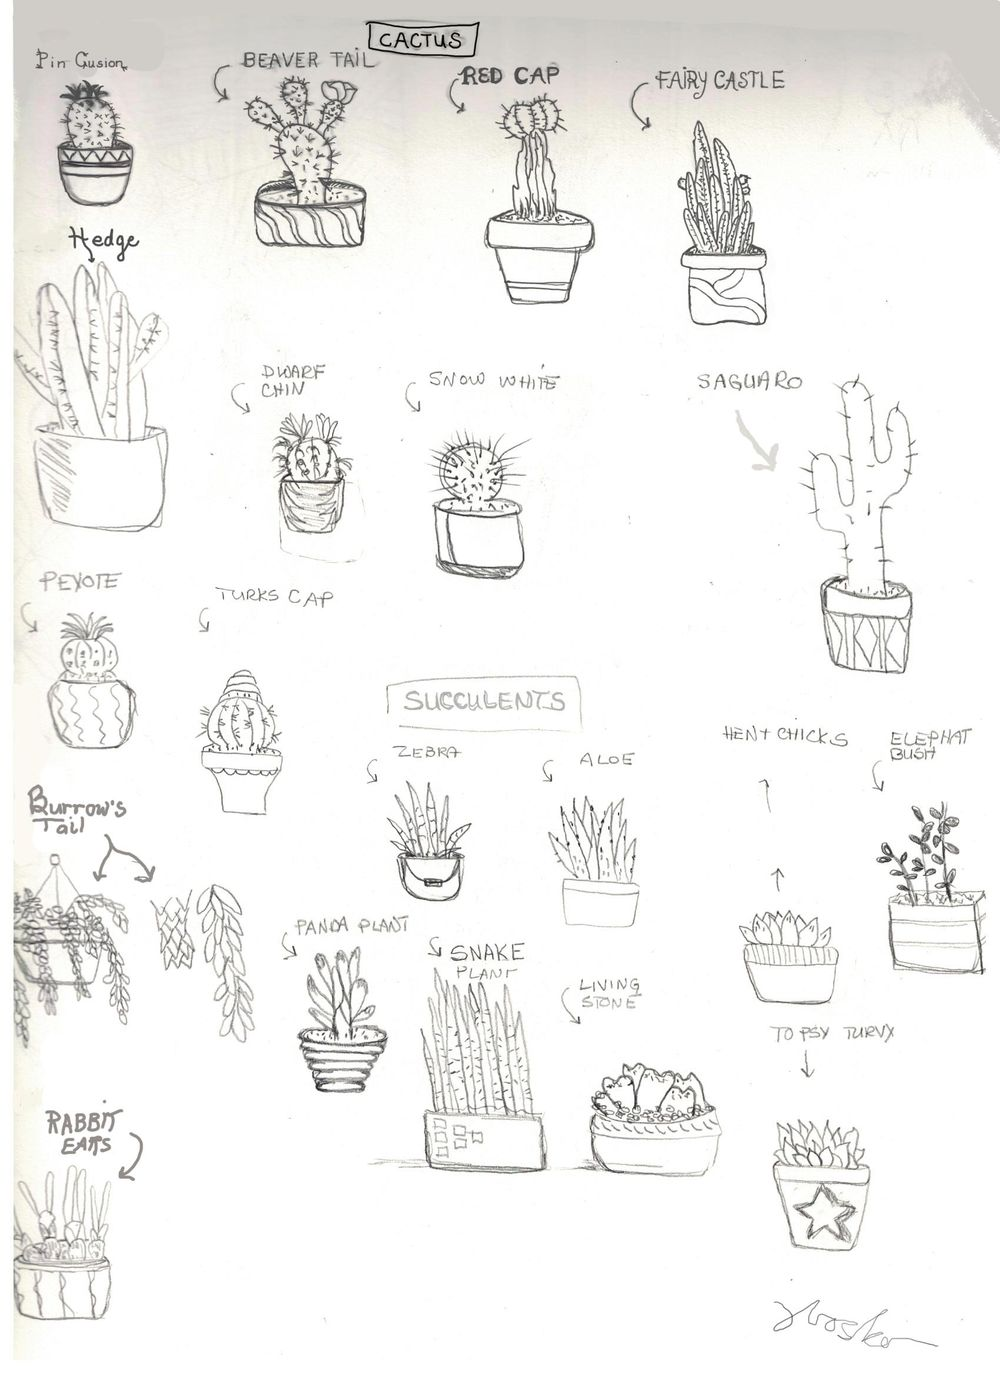 Wild West Cactus Town - image 2 - student project